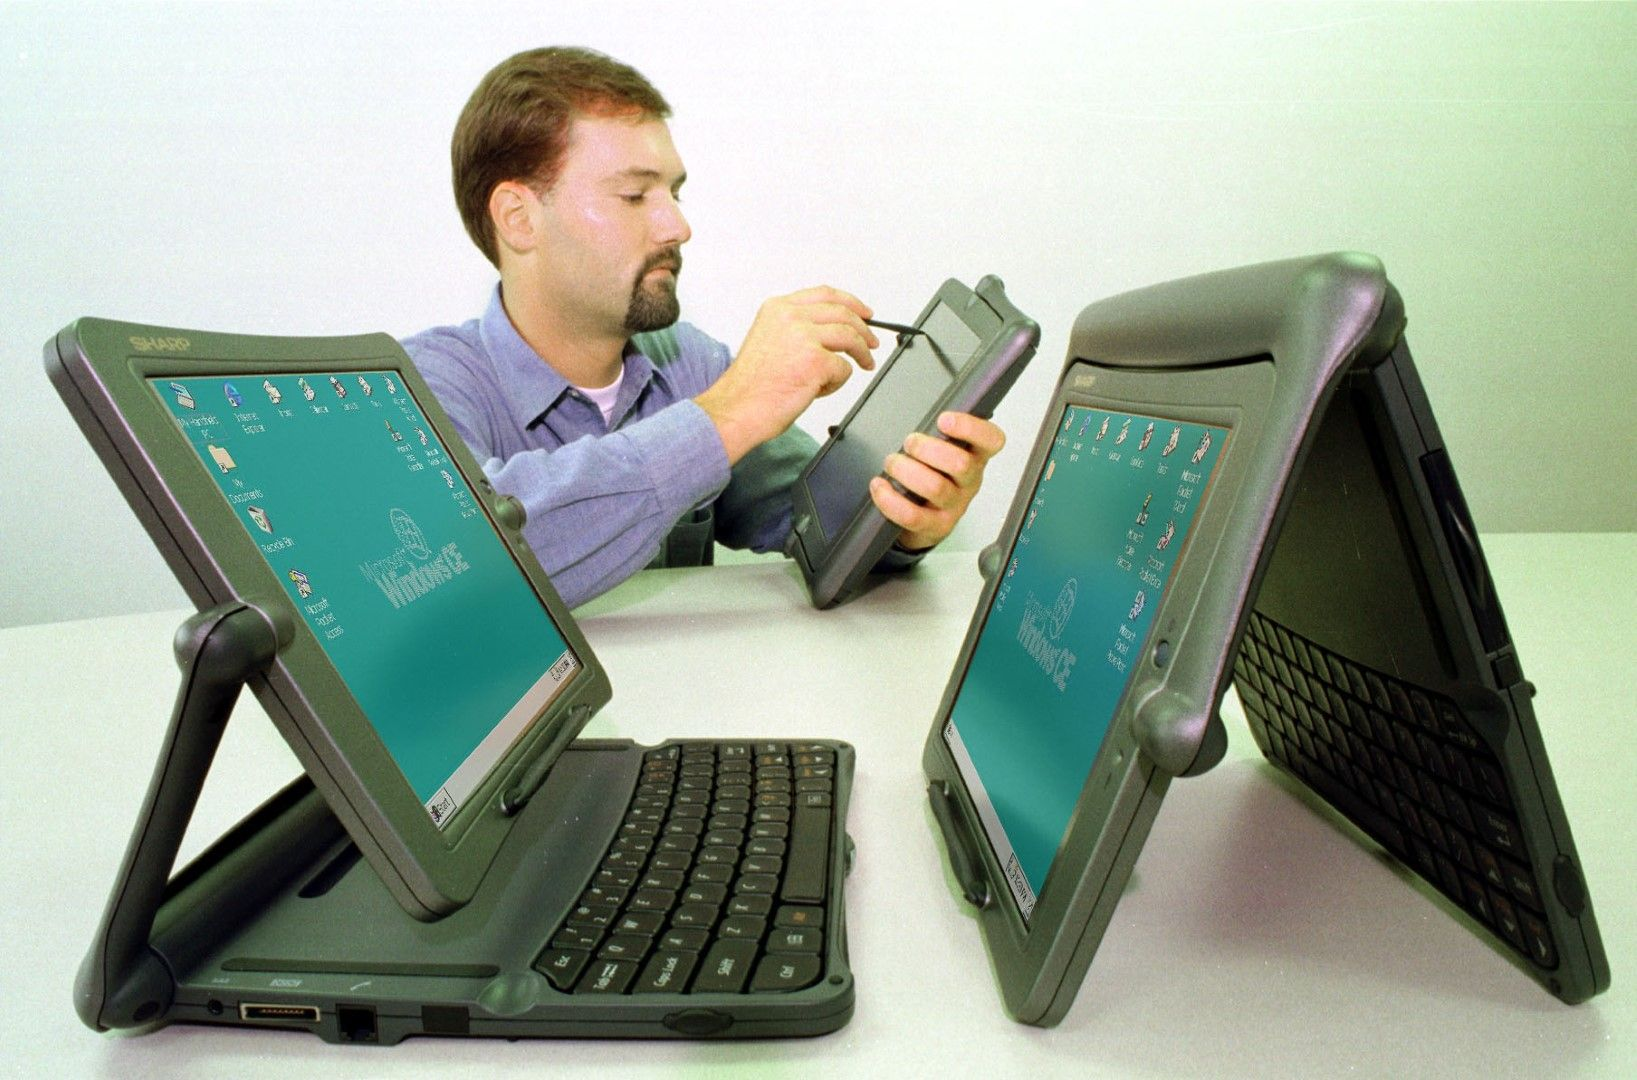 """The Sharp Mobilion TriPad, a two-in-one """"Handheld PC Pro"""" powered by the Windows CE. The computer was also sold as the Vadem Clio."""